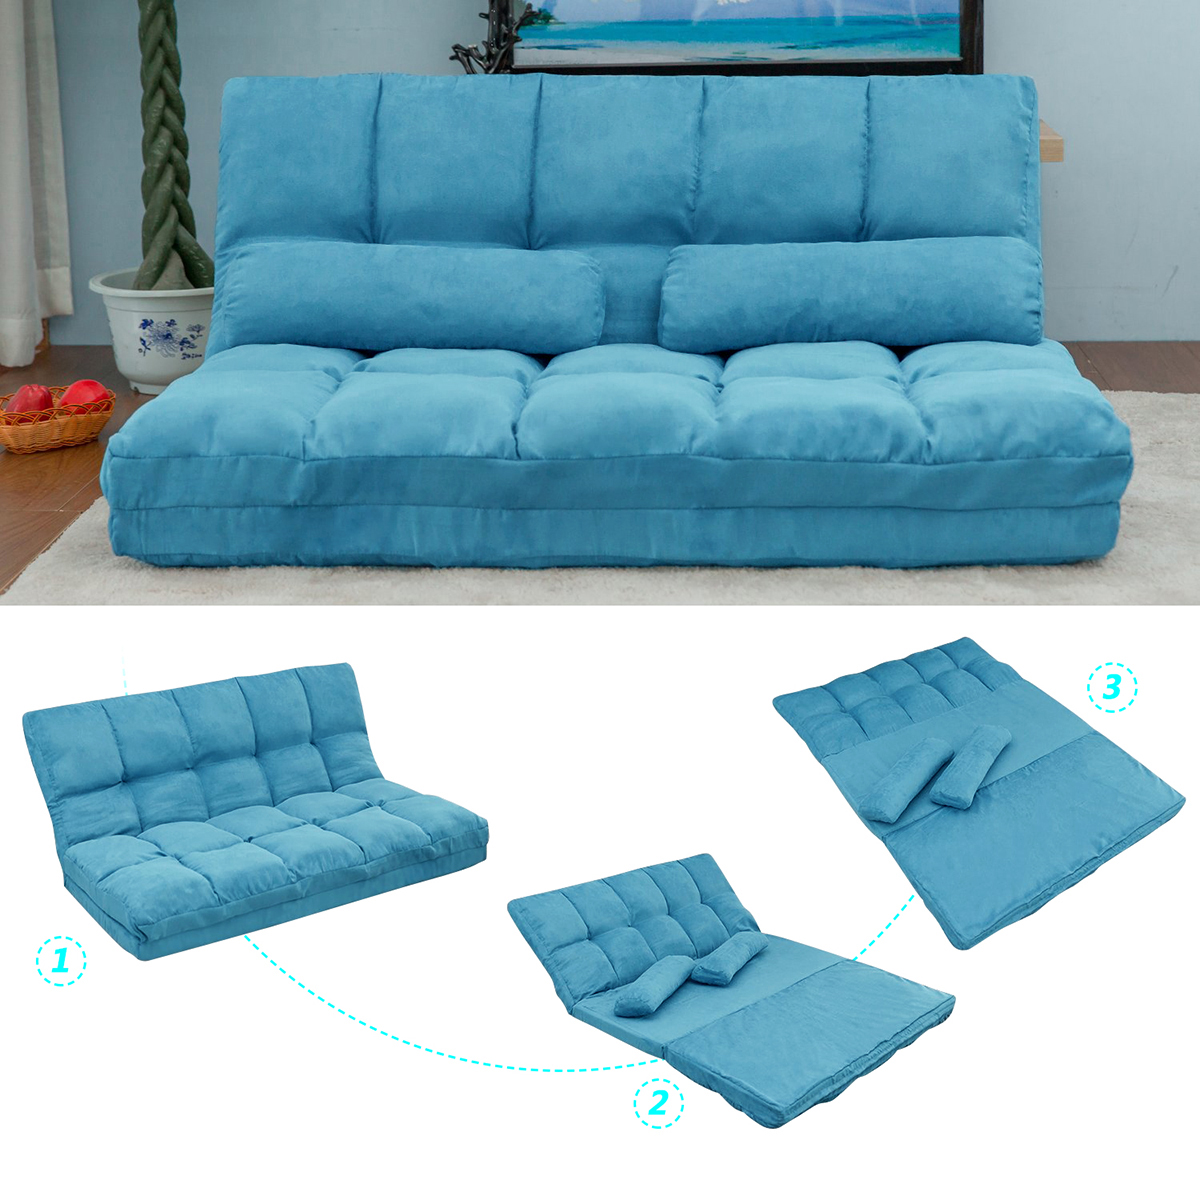 Double Chaise Lounge Sofa With Two Pillows